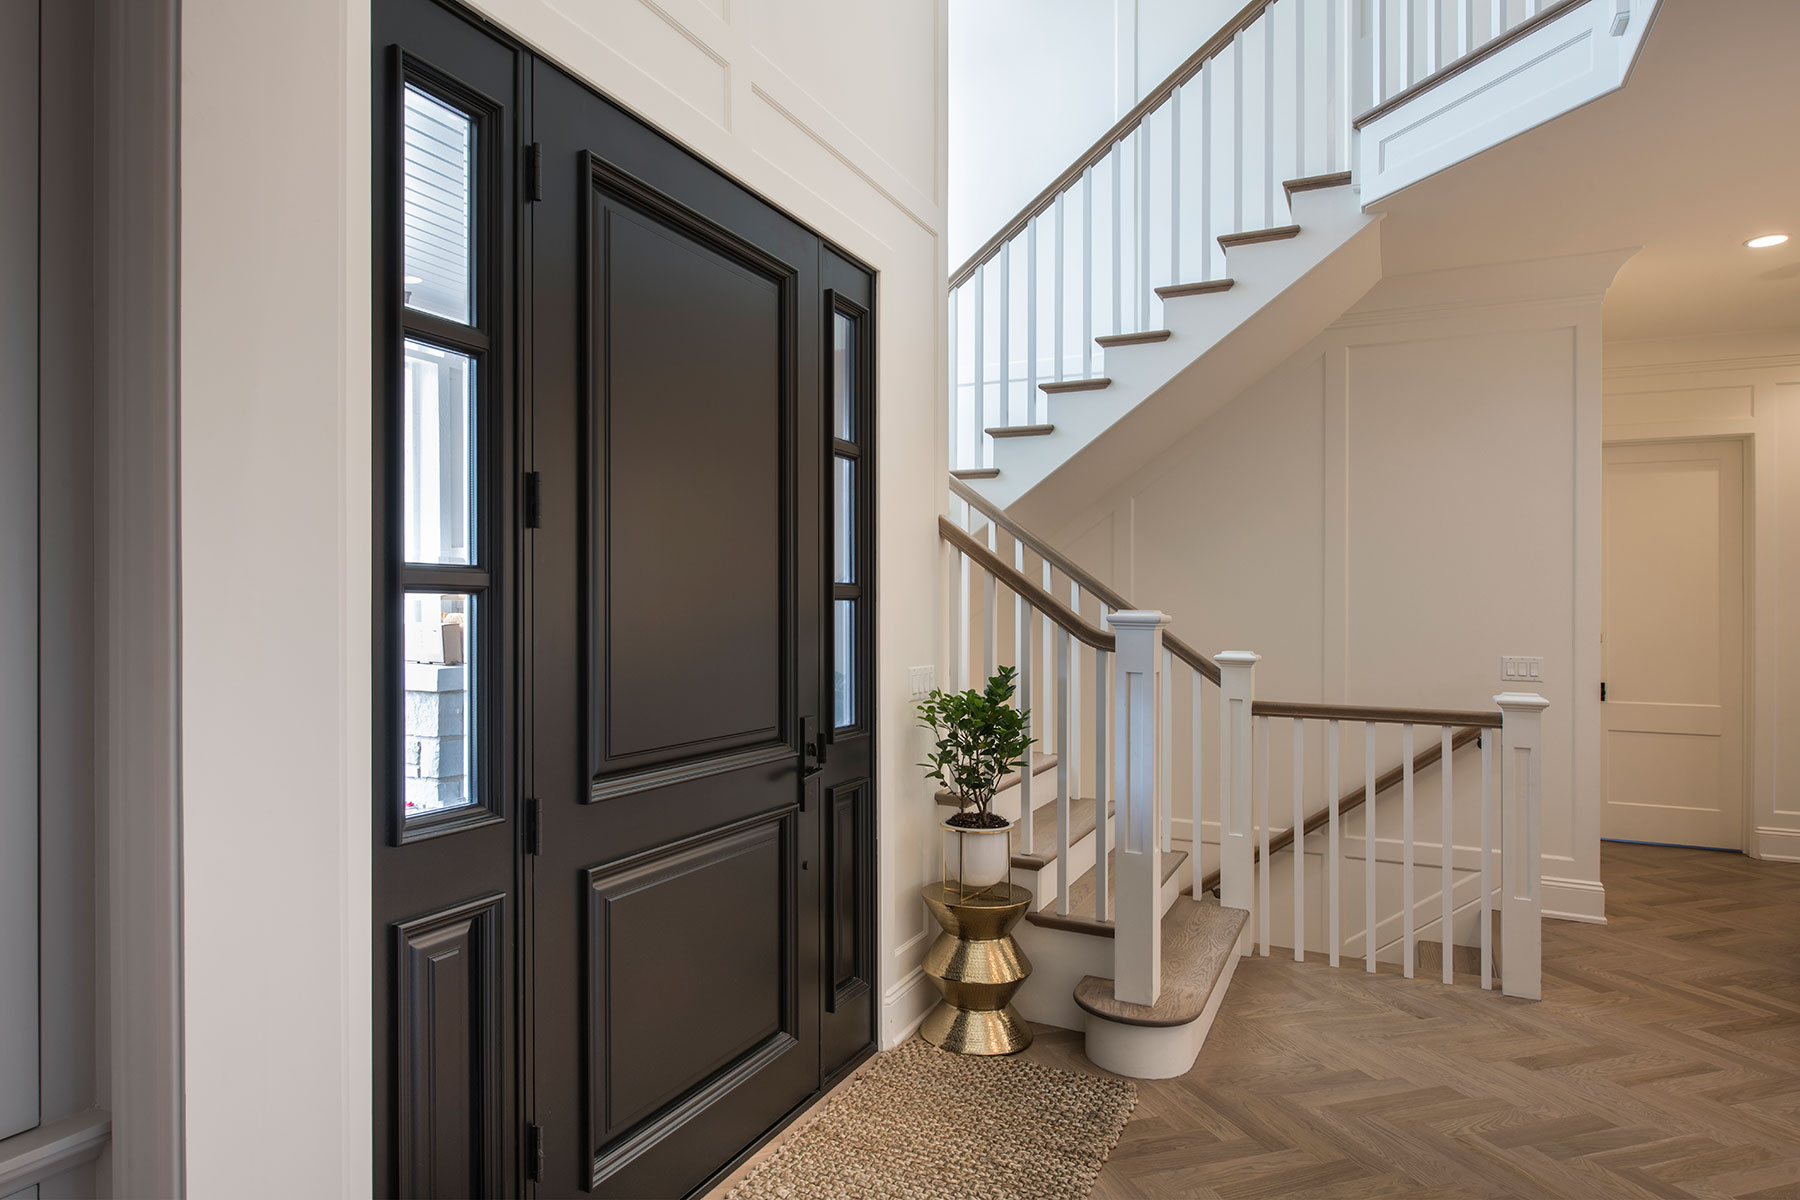 Wood Front Entry Doors in-Stock | interior view of solid wood front entry door with sidelites DB-301PW 2SL - Glenview Doors - Custom Doors in Chicago